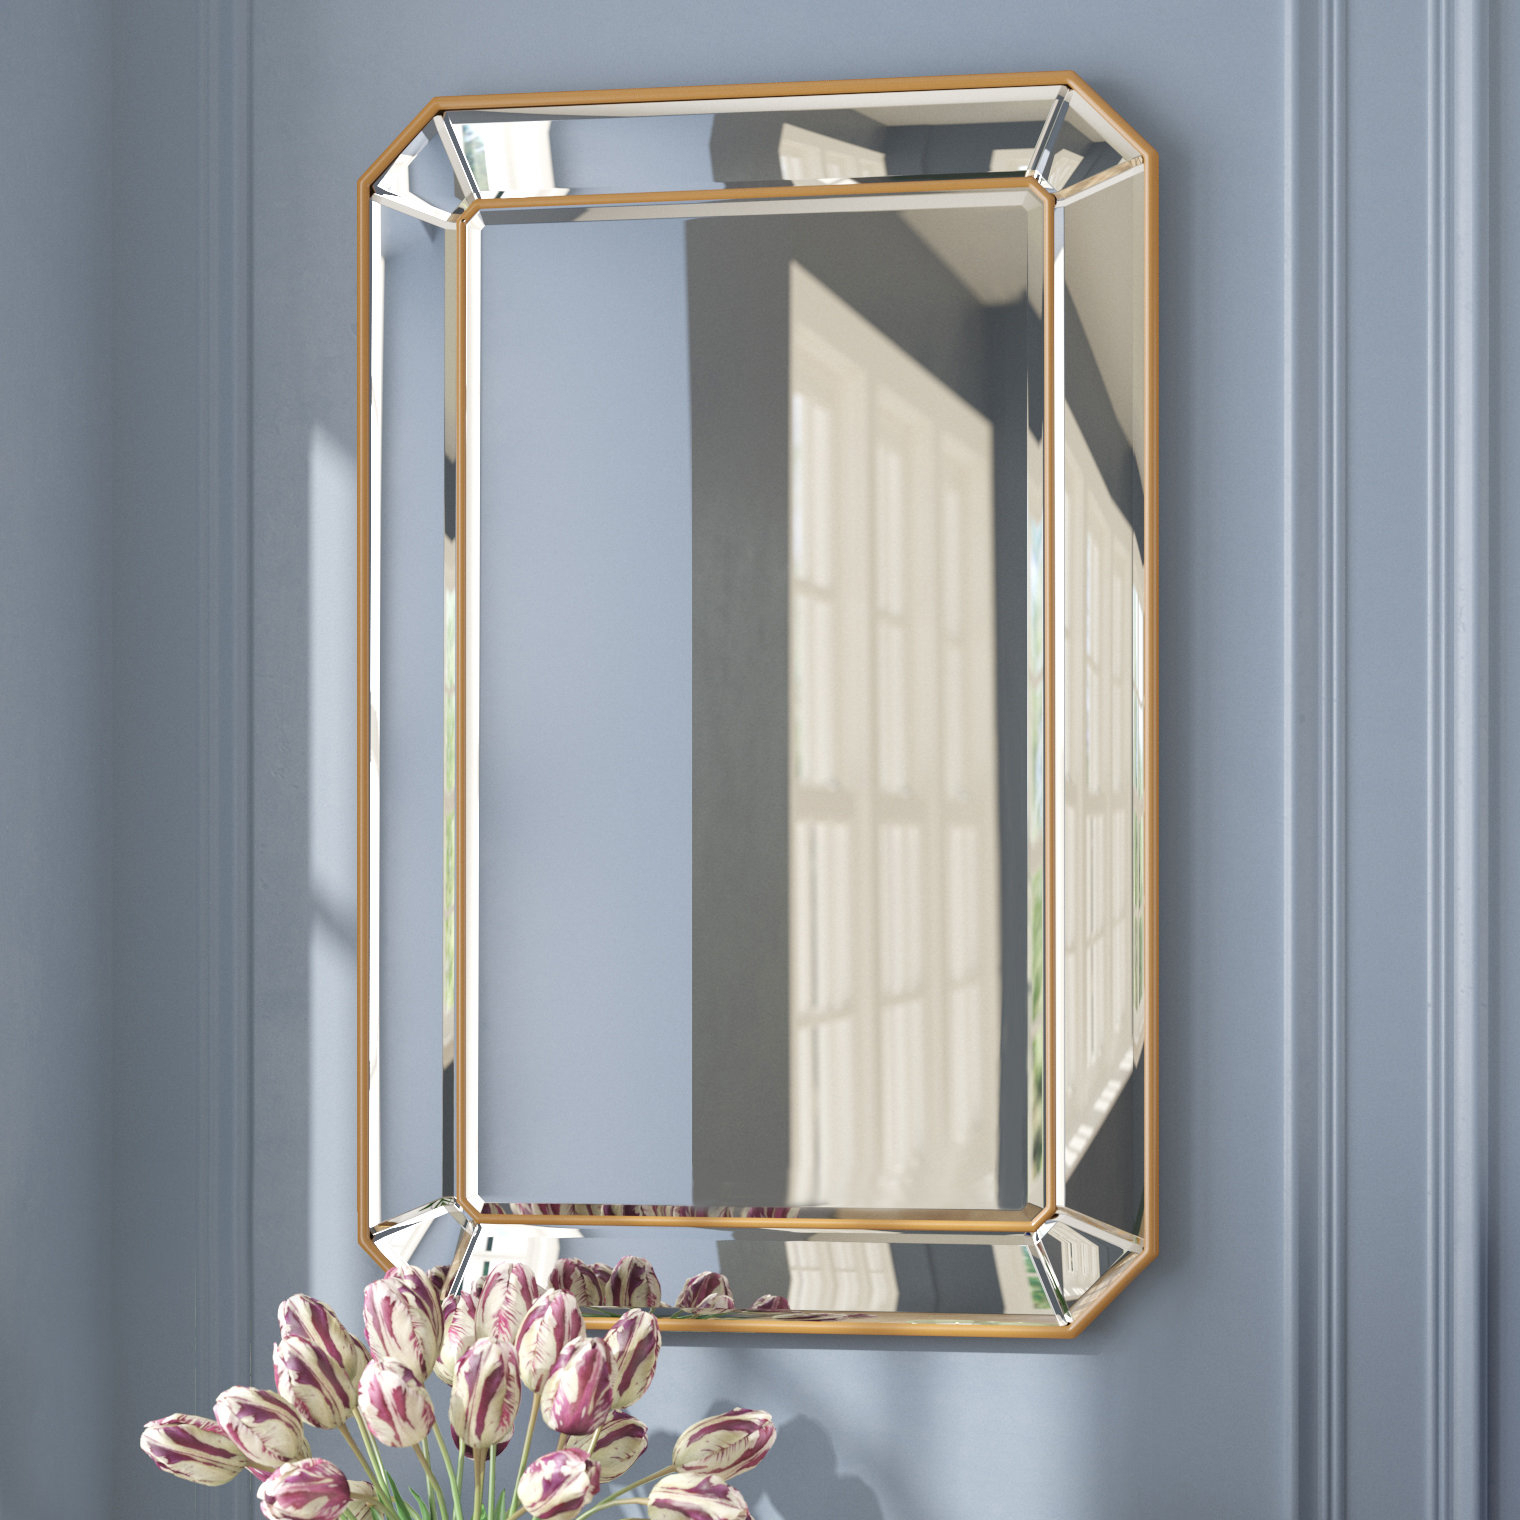 Broadmeadow Accent Wall Mirror | Wayfair With Swagger Accent Wall Mirrors (View 16 of 20)